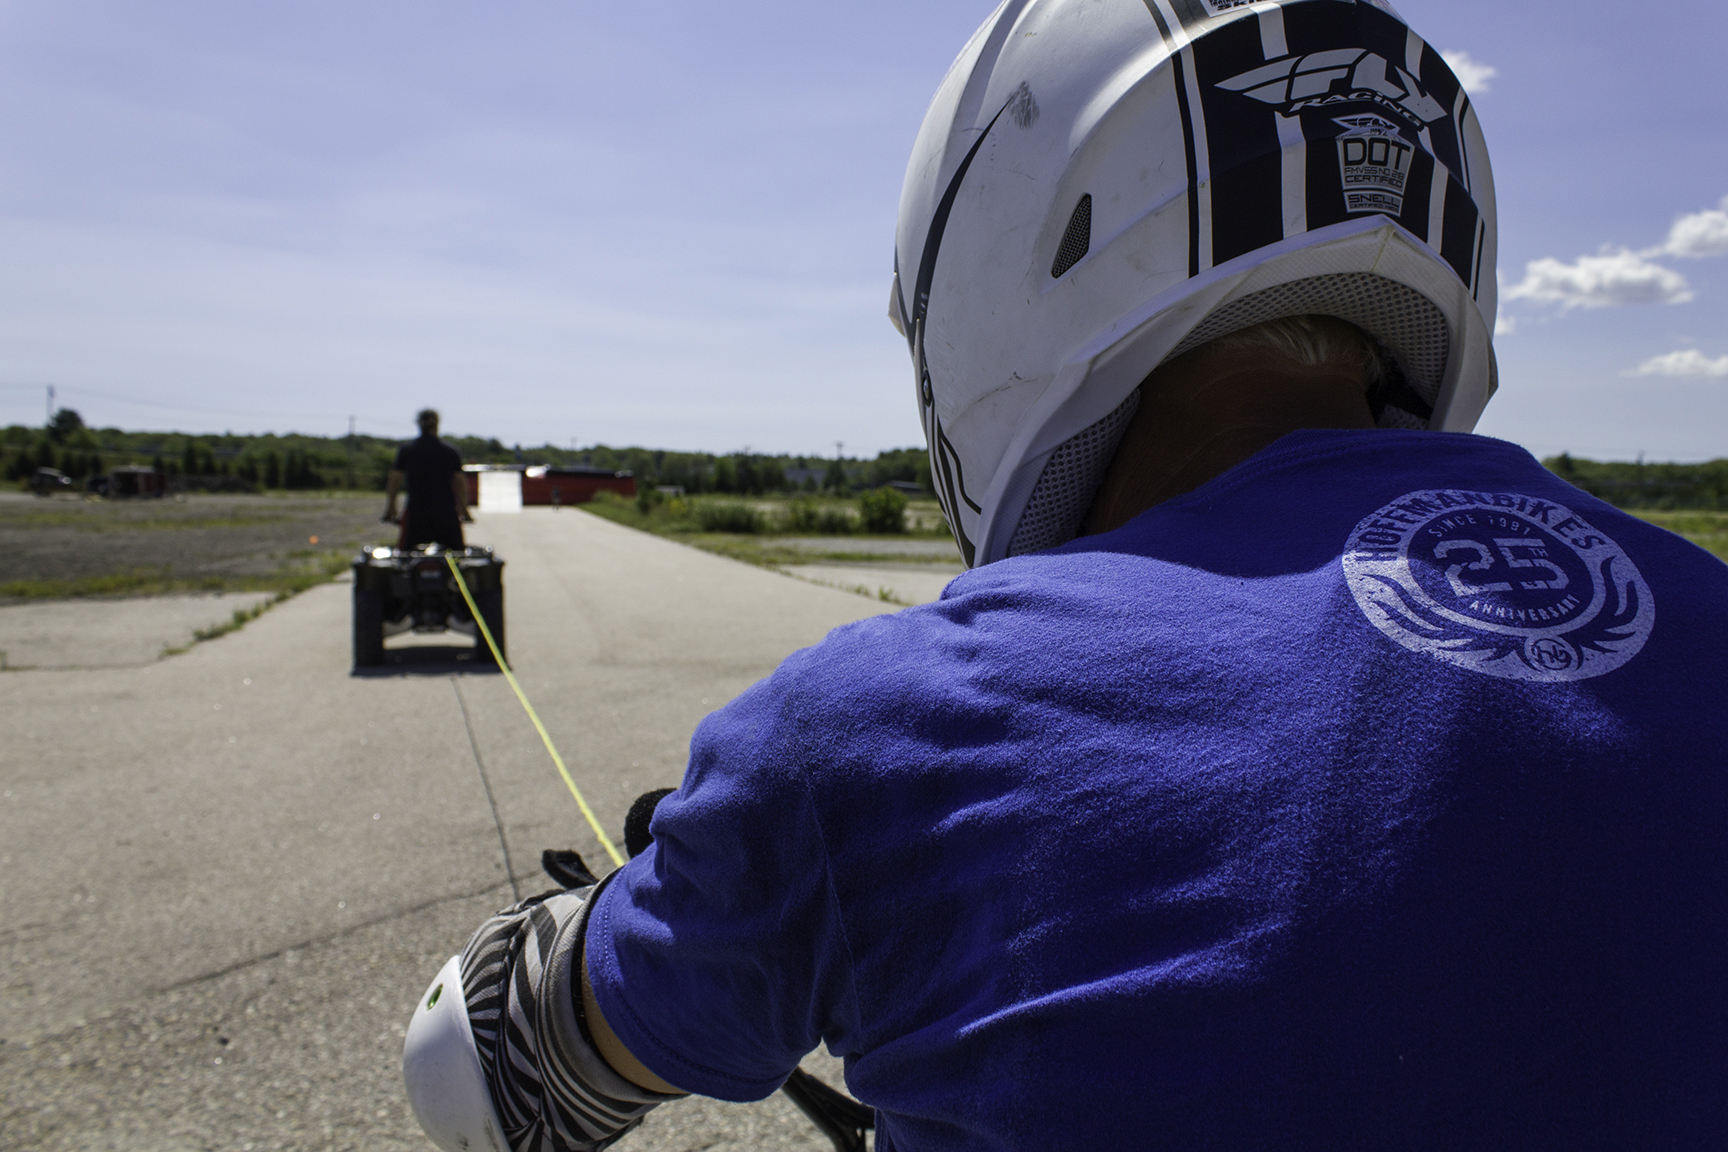 To achieve the speed Robinson needs to clear the distance, he is being towed in by an ATV four-wheeler.